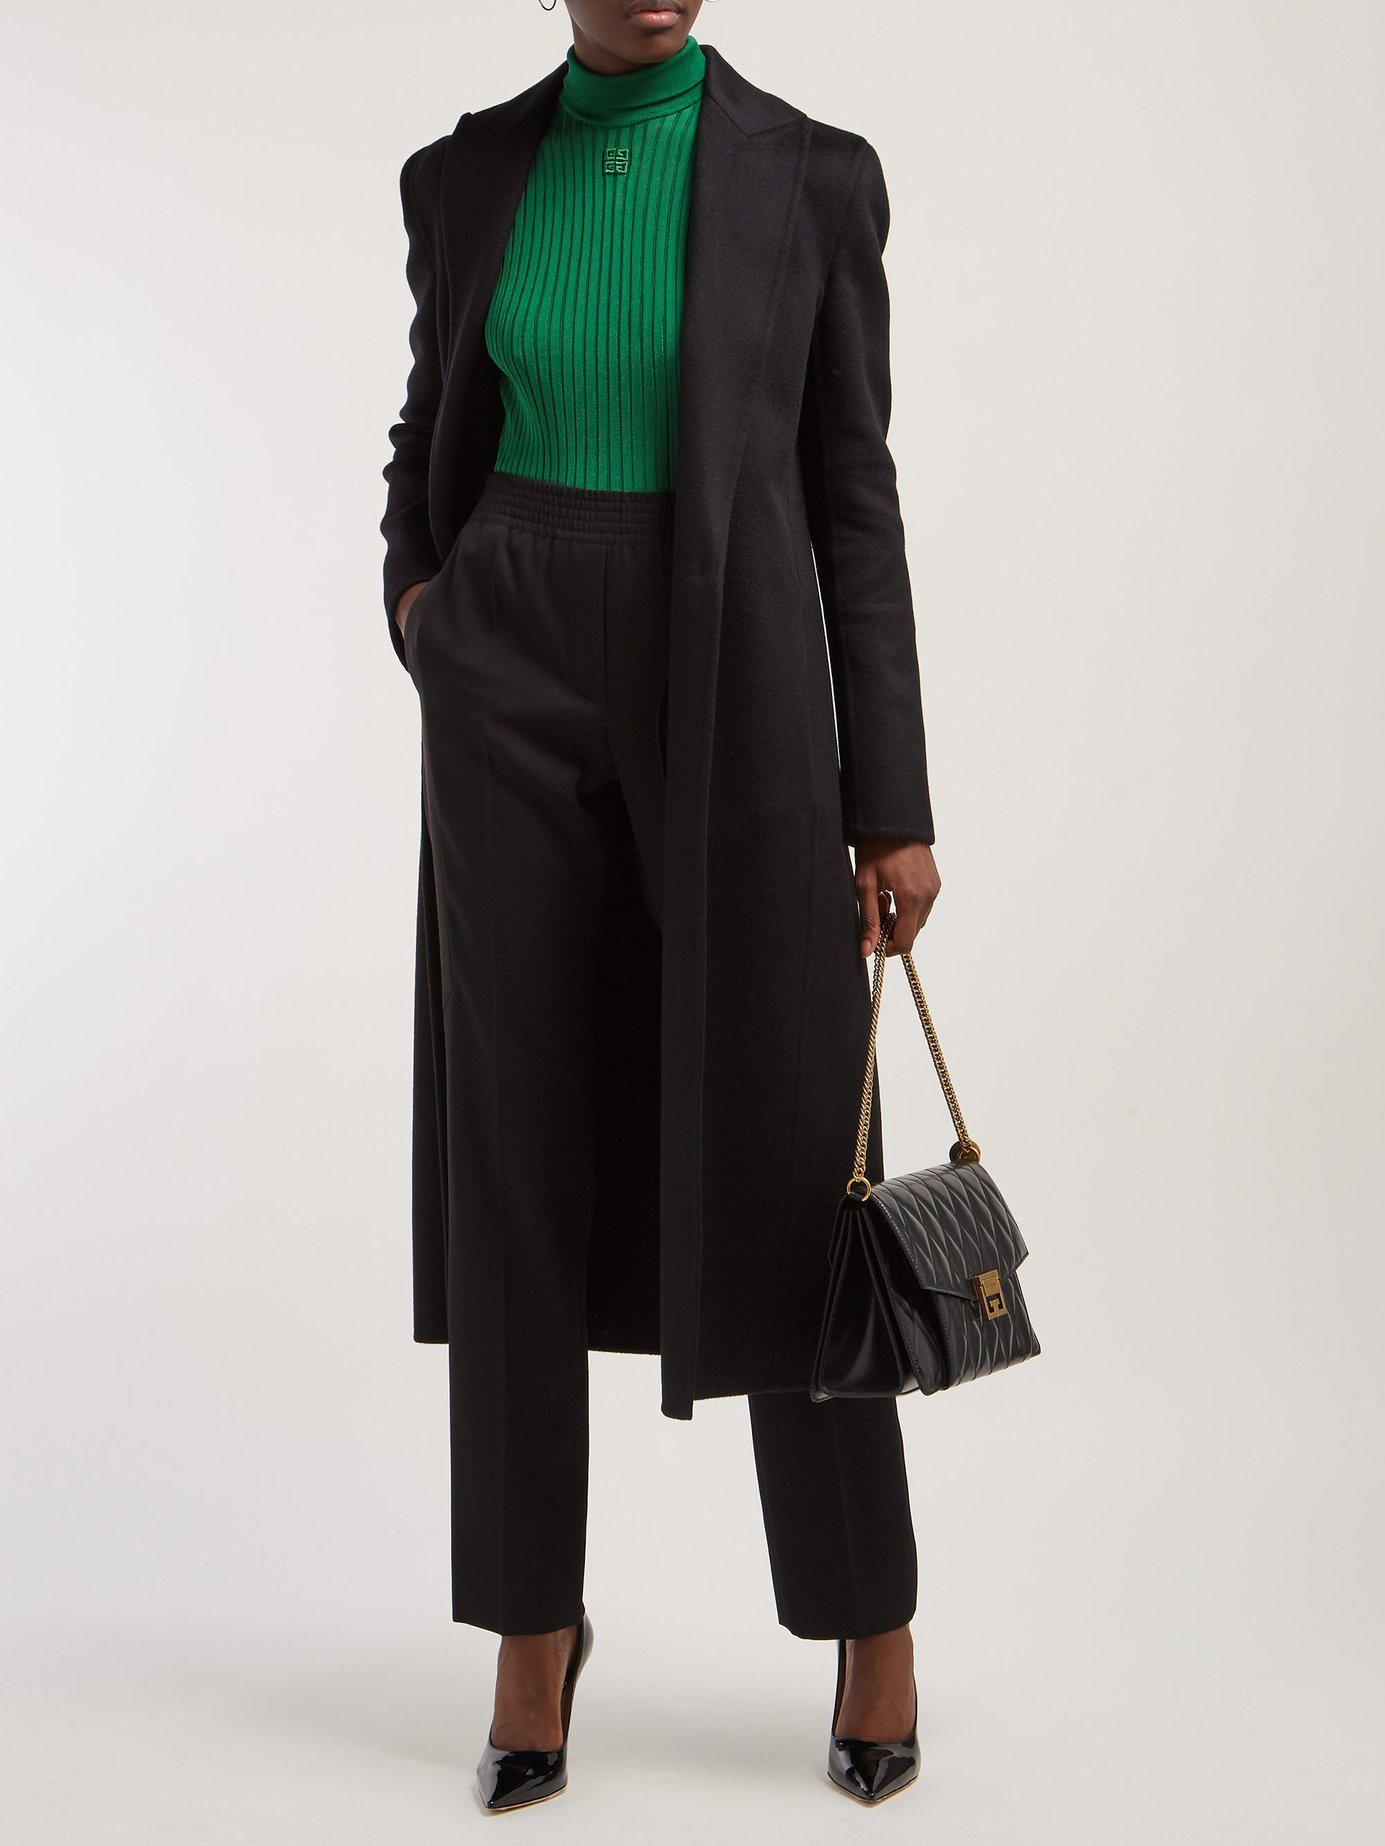 Givenchy - Black Satin Stripe Tailored Wool Trousers - Lyst. View fullscreen e33823de52e7c